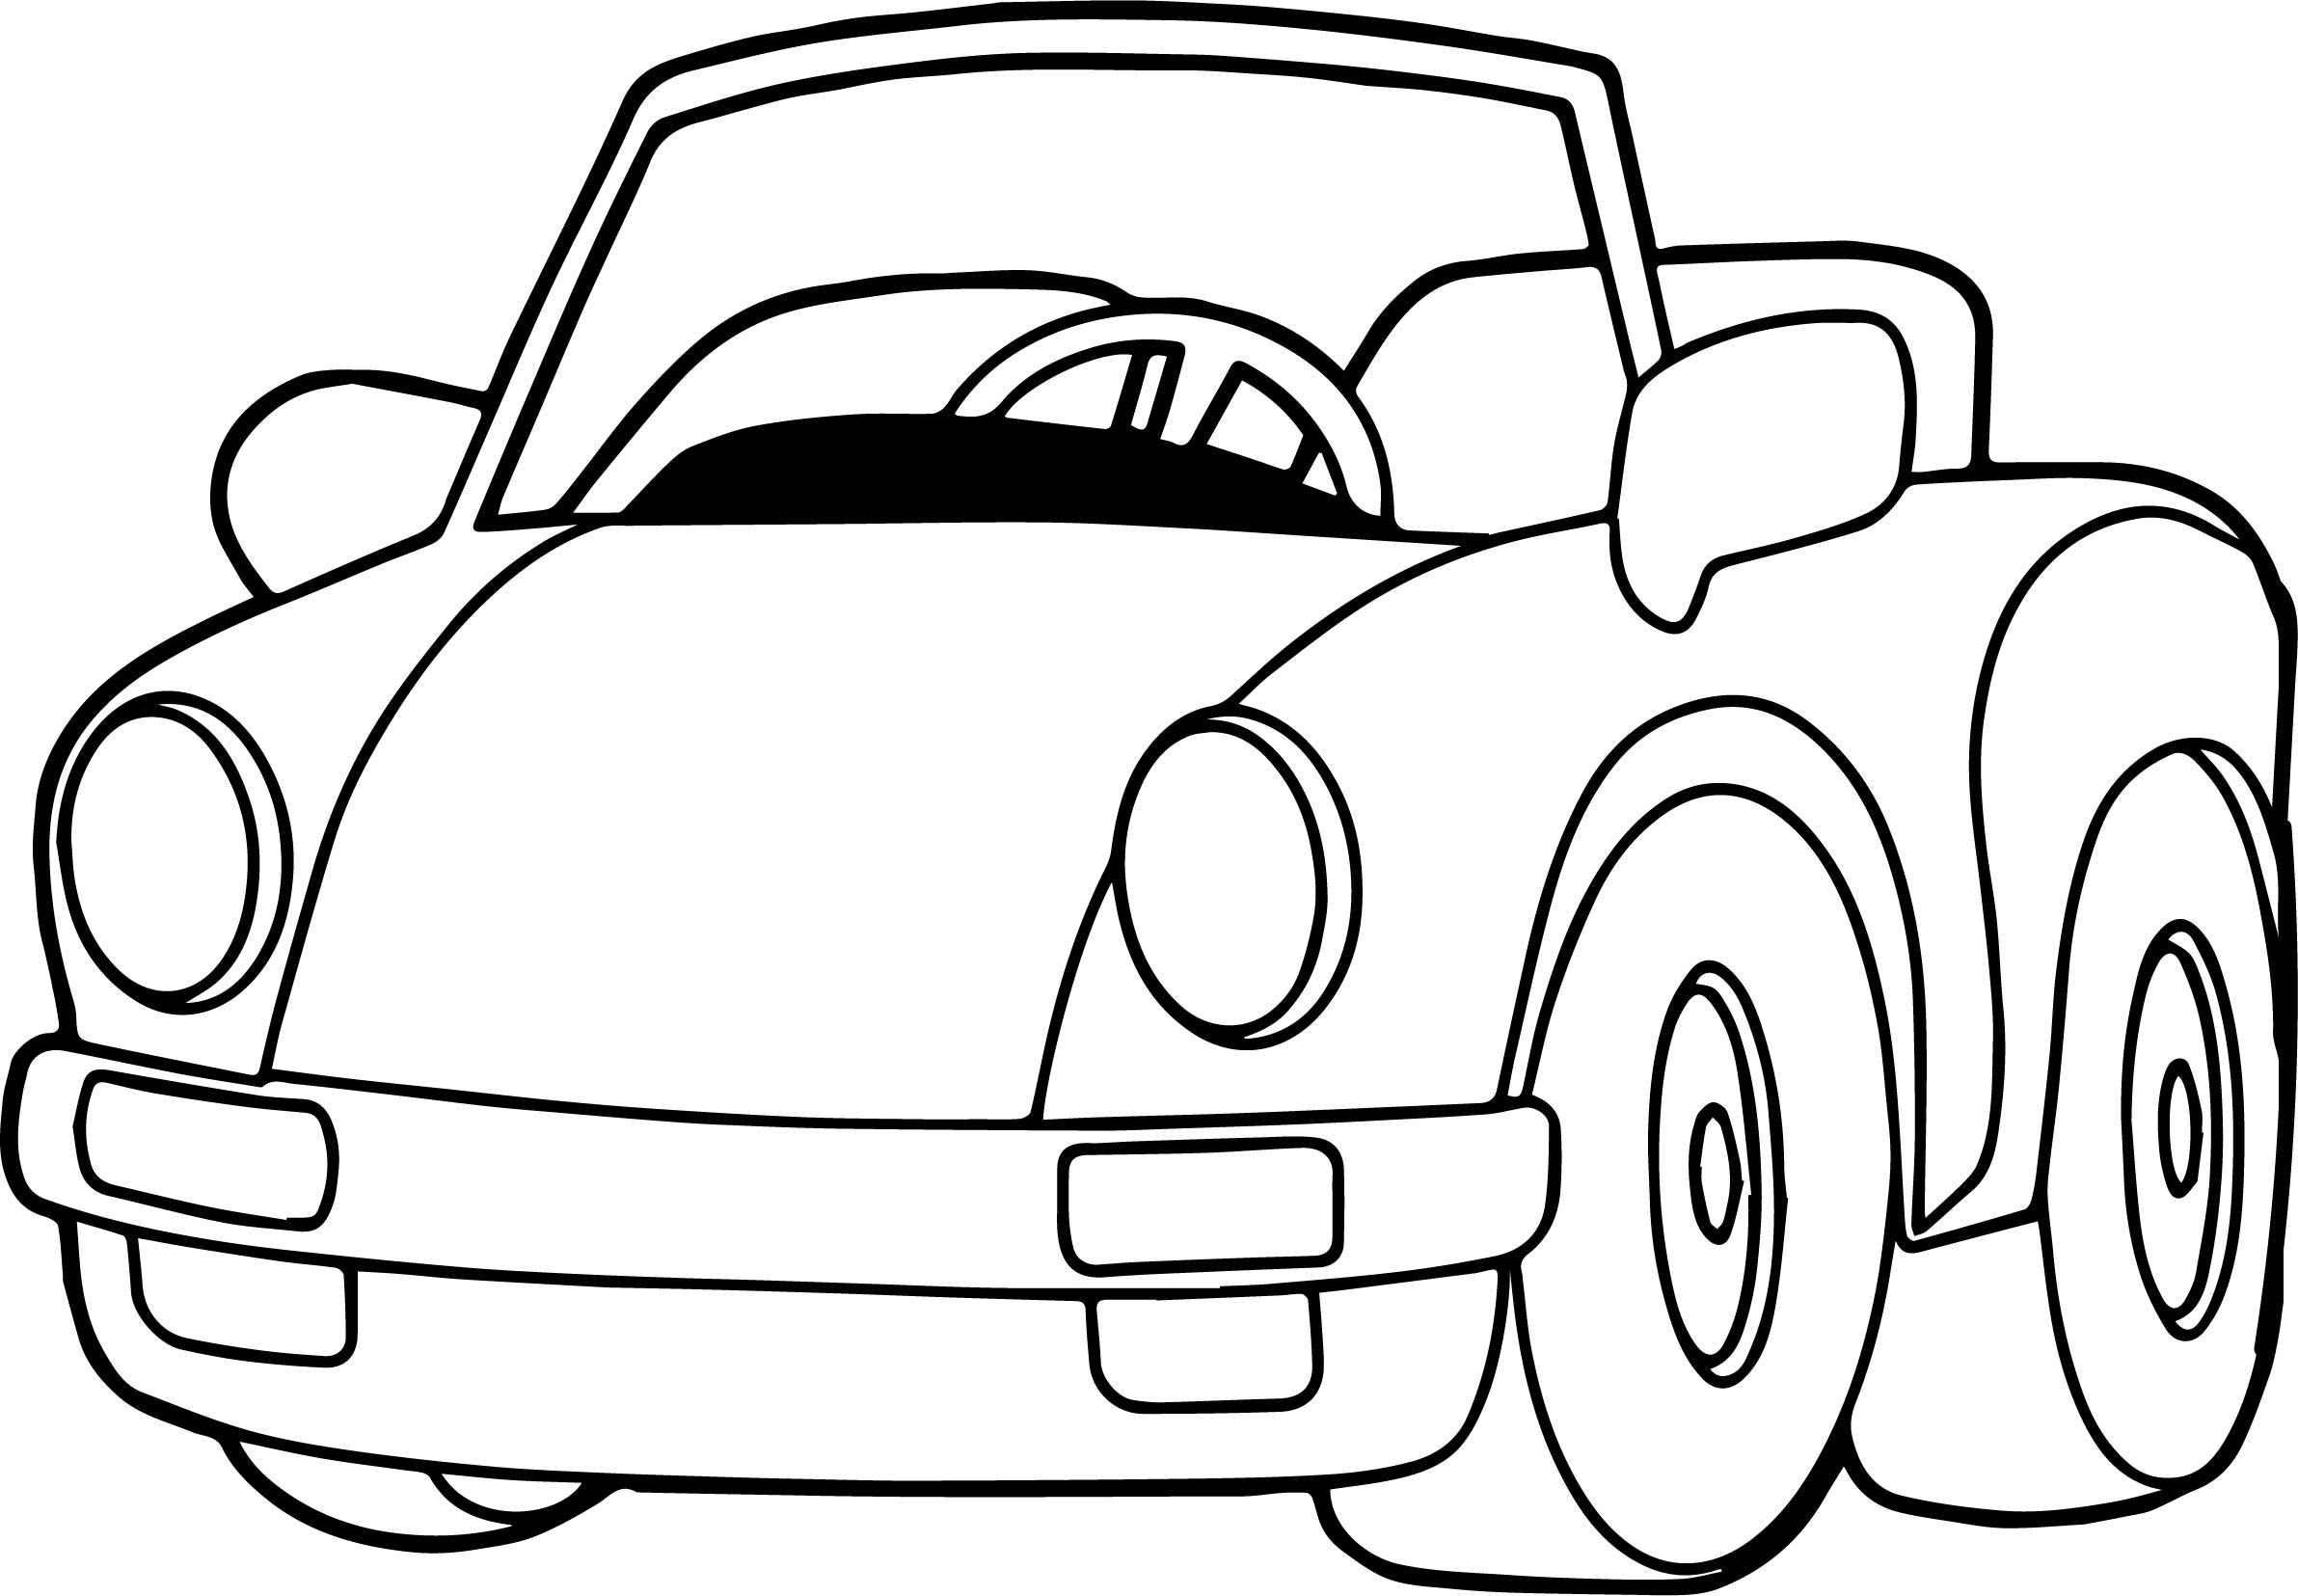 toy car coloring page coloring page toy car car page coloring toy